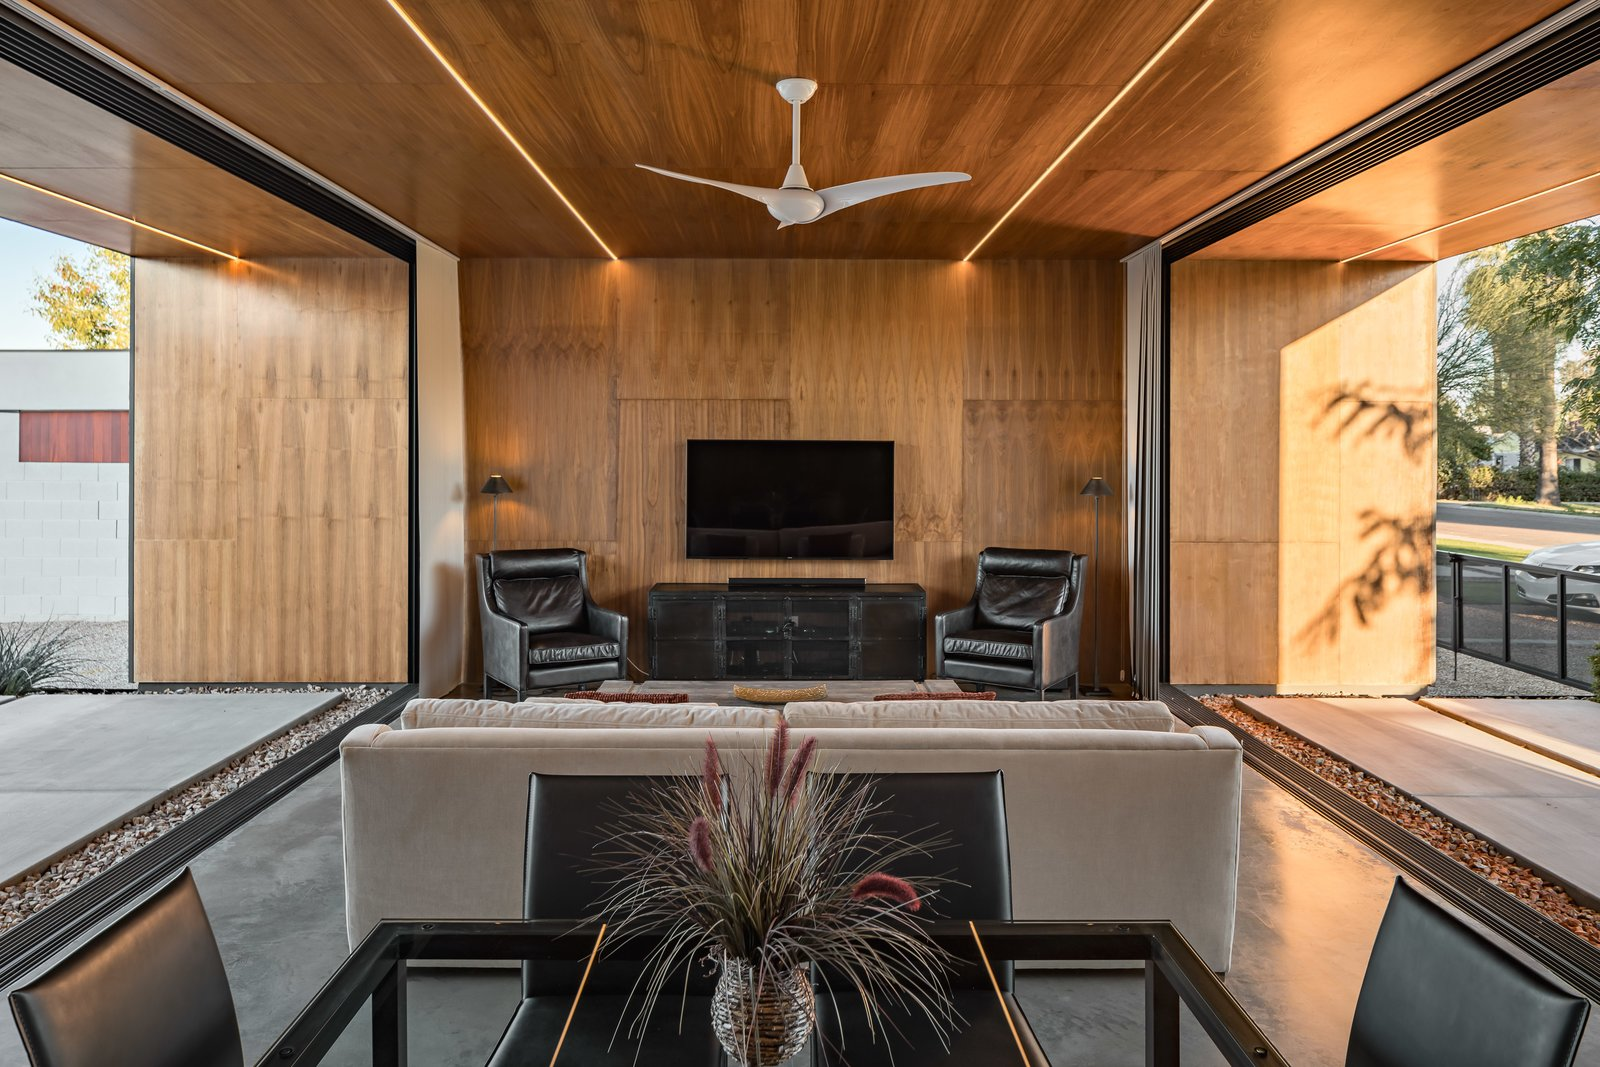 Concrete, Trees, Concrete, Ceiling, Grass, Front Yard, Living, Chair, Sofa, and Coffee Tables Walnut plywood with integrated LED lighting clad the open living space area, extending beyond the pocketing glass walls to the exterior  Living Ceiling Grass Photos from Link House